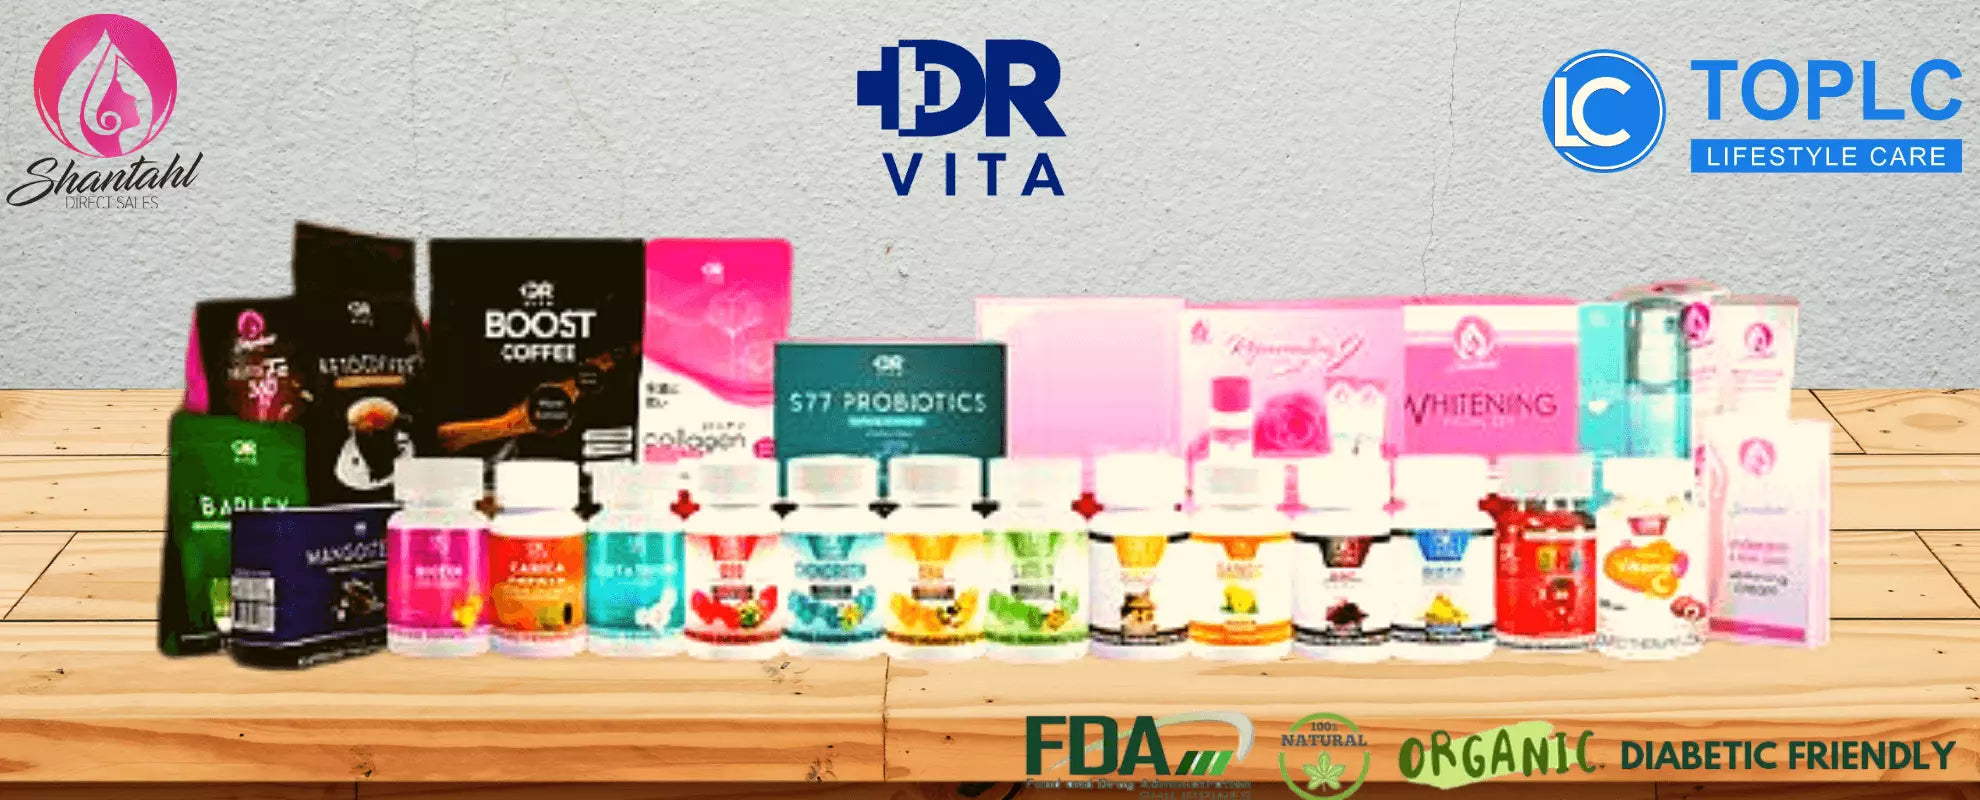 dr vita products